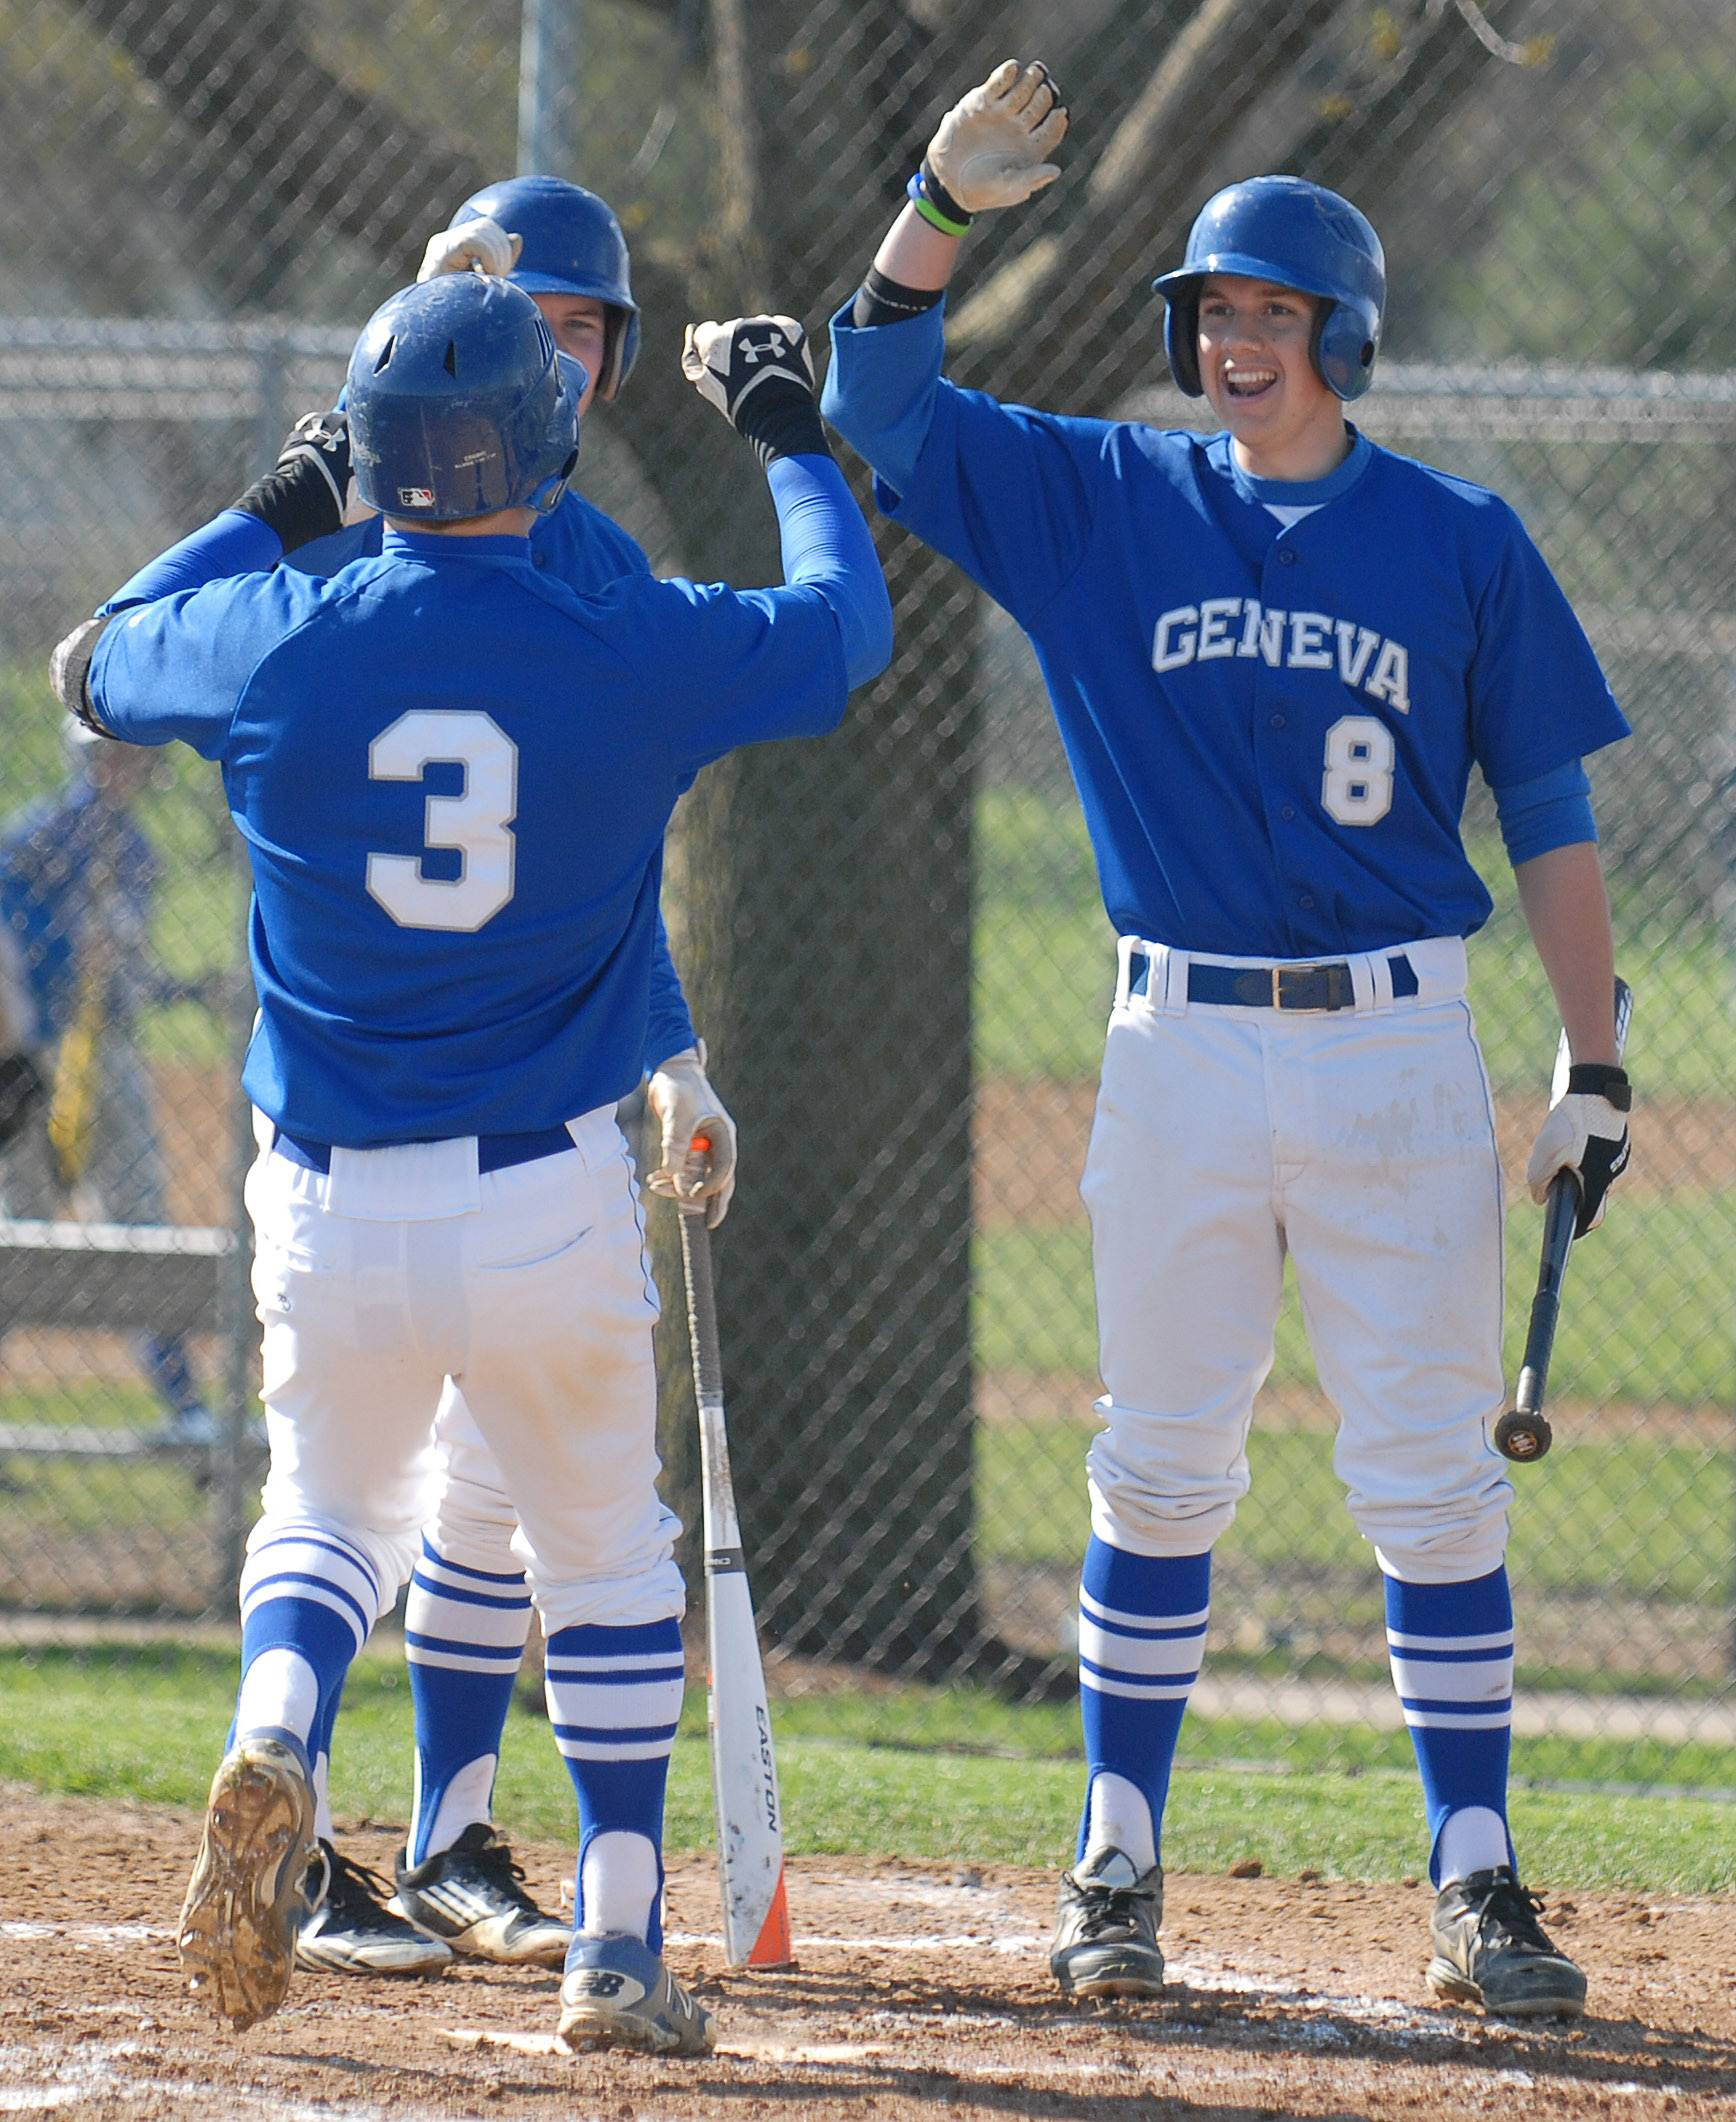 Geneva's Nick Derr (3) is welcomed at home plate by teammates Jason Croci, left, and Ben Chally, right, after hitting a home run in the first inning vs. St. Charles East on Saturday, May 3.